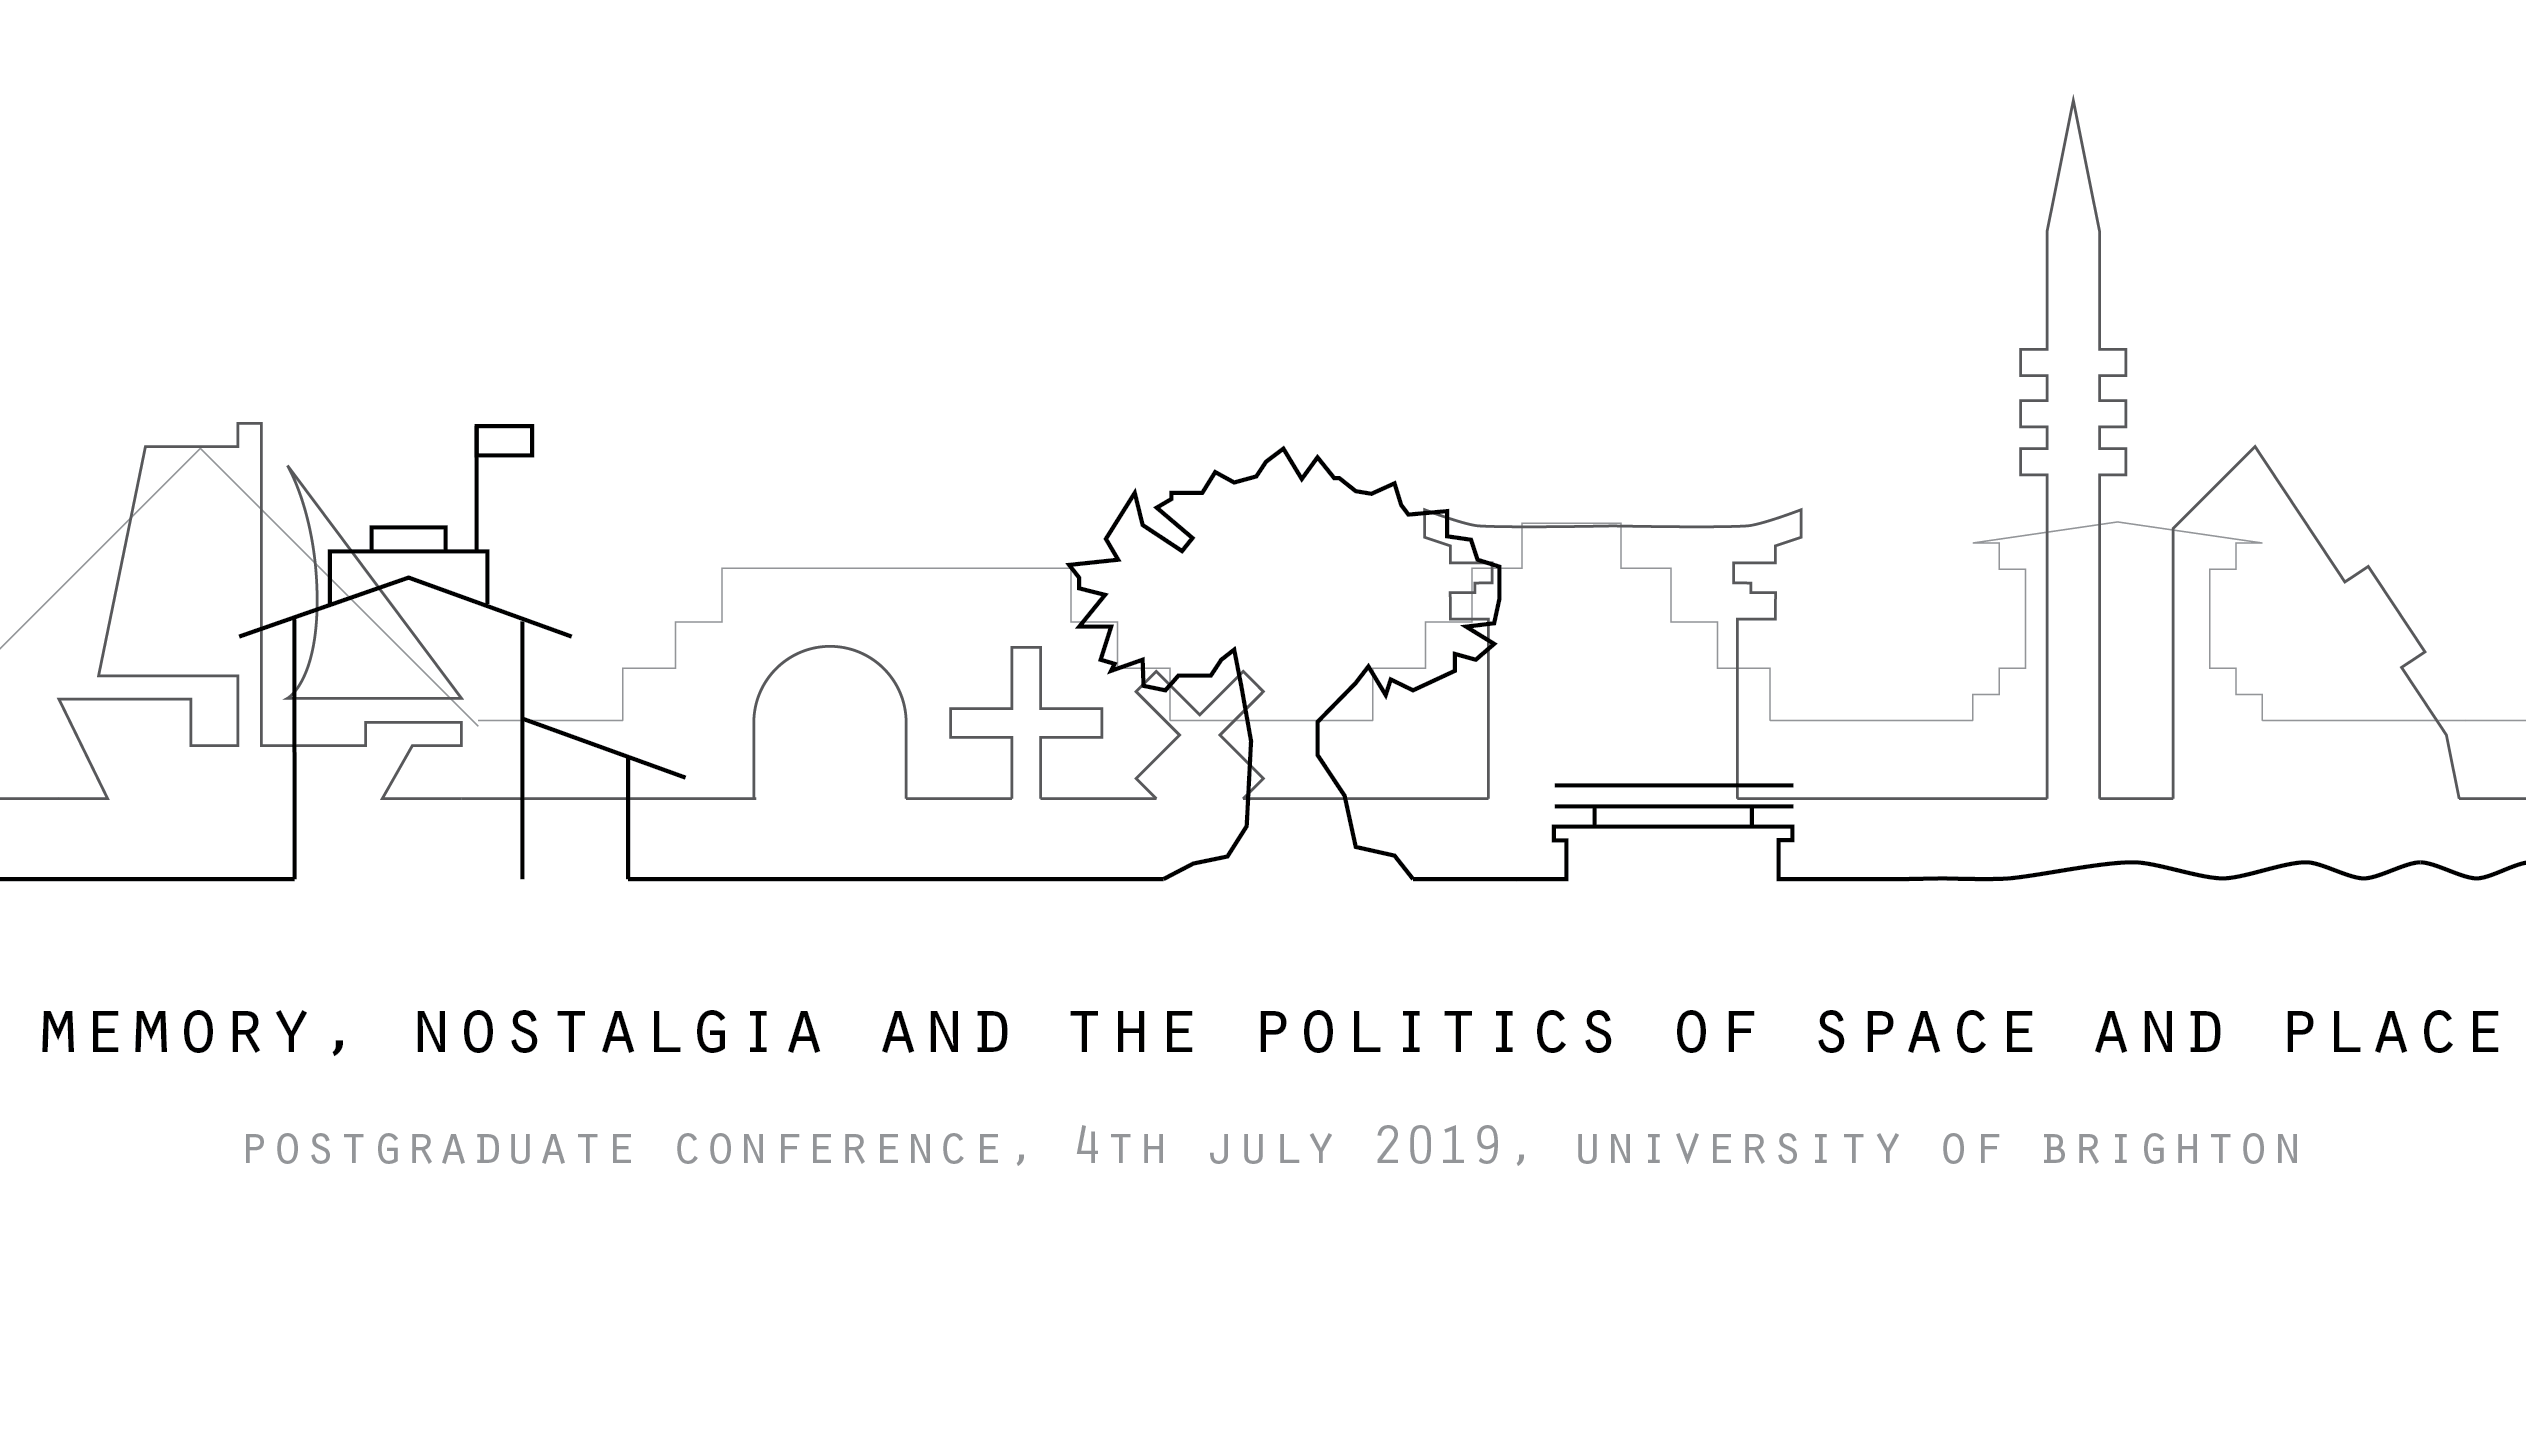 Conference: Memory, nostalgia and the politics of space and